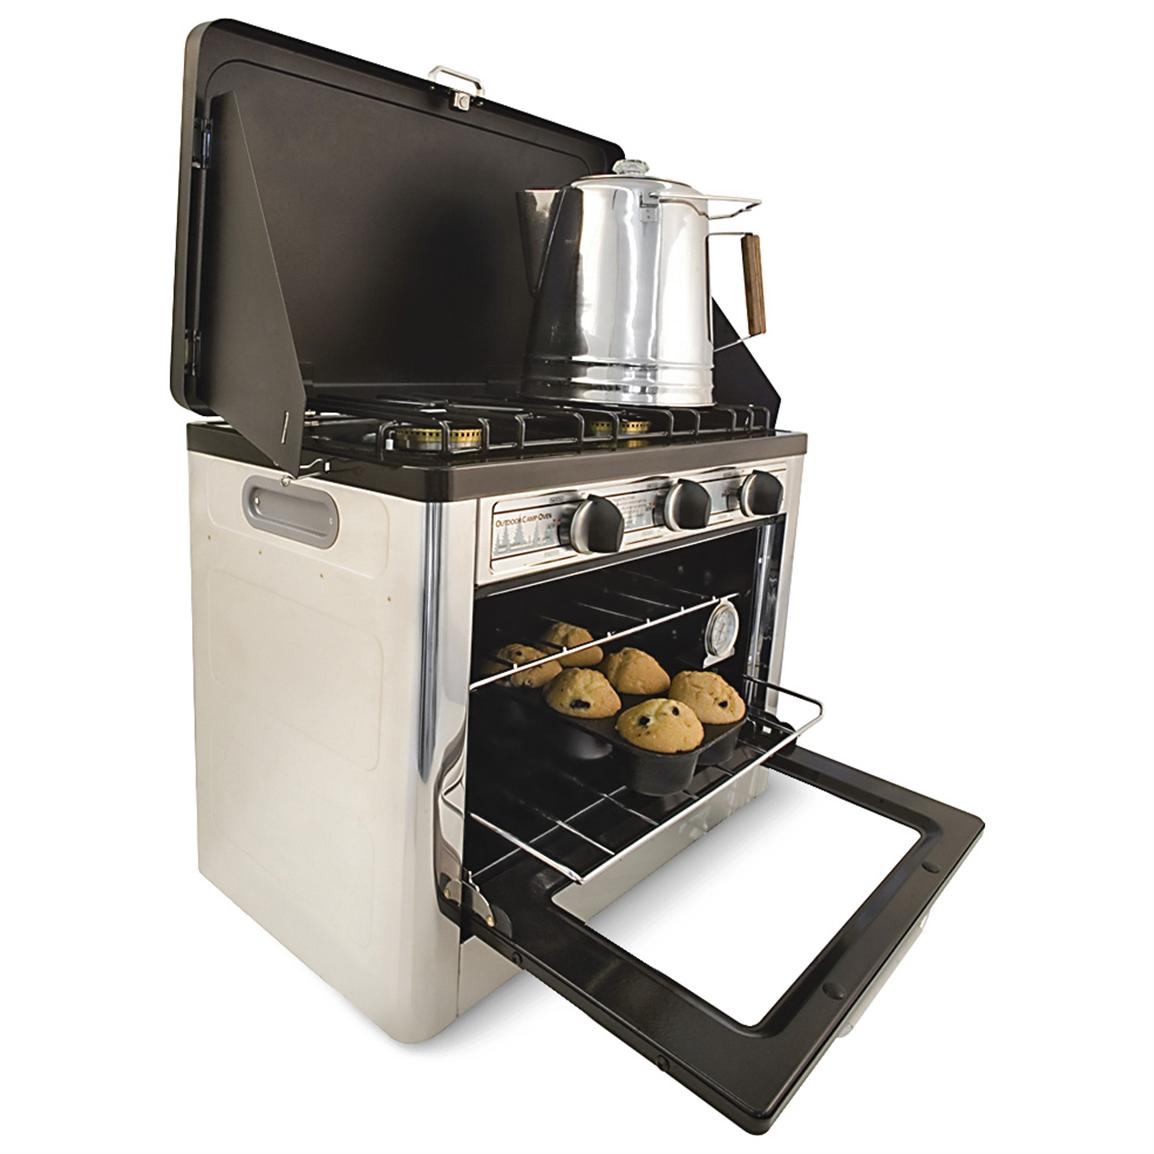 Herd Ofen Camp Chef Portable Outdoor Stove Top Oven 134960